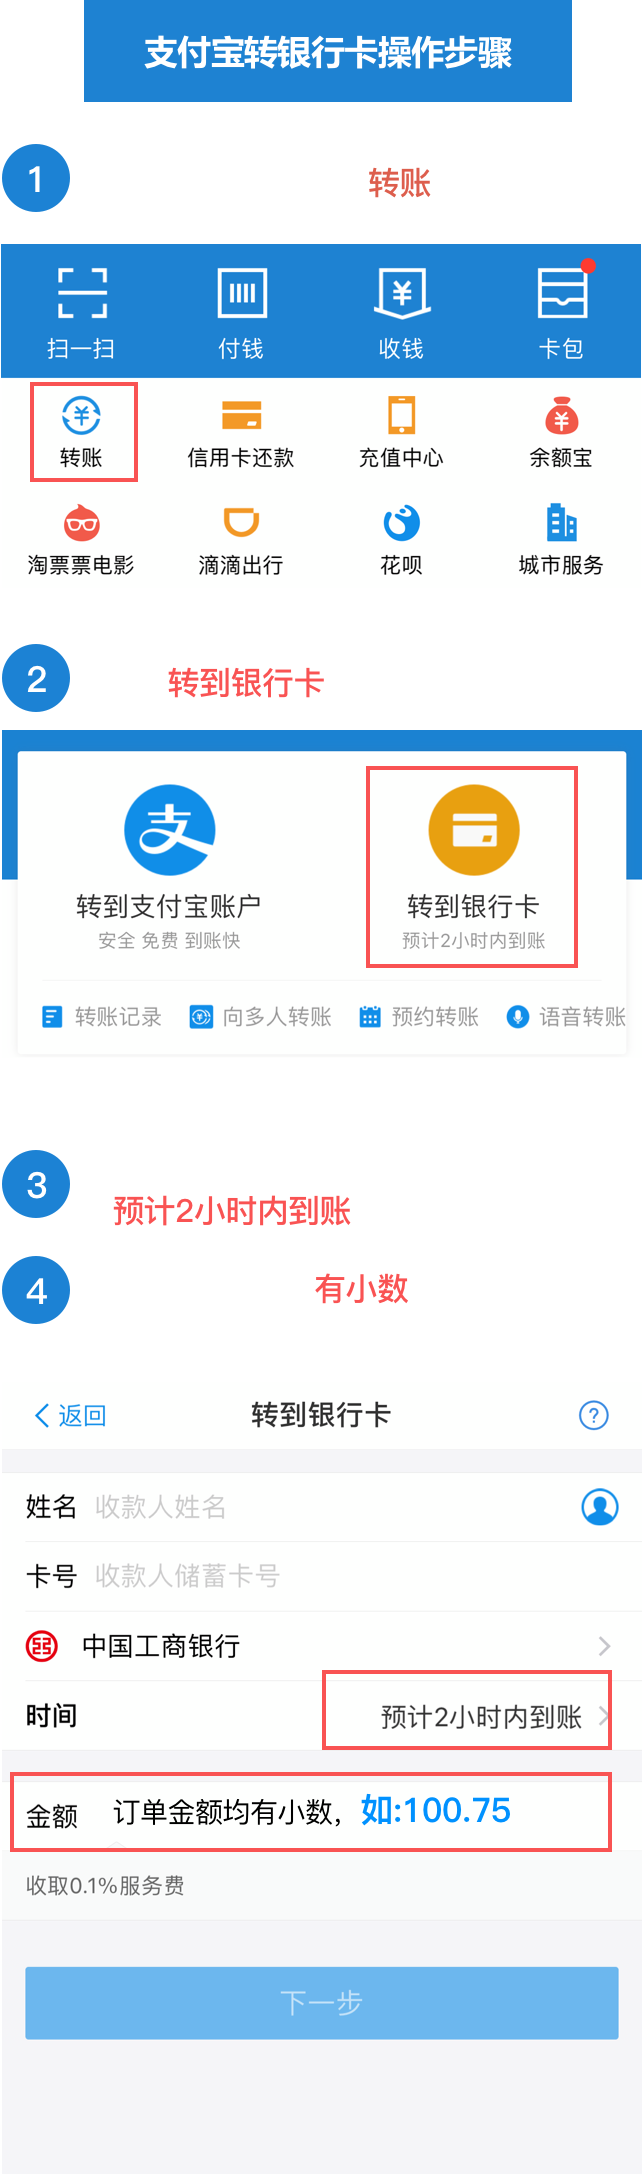 ALIPAY_BANK_BOOT.png